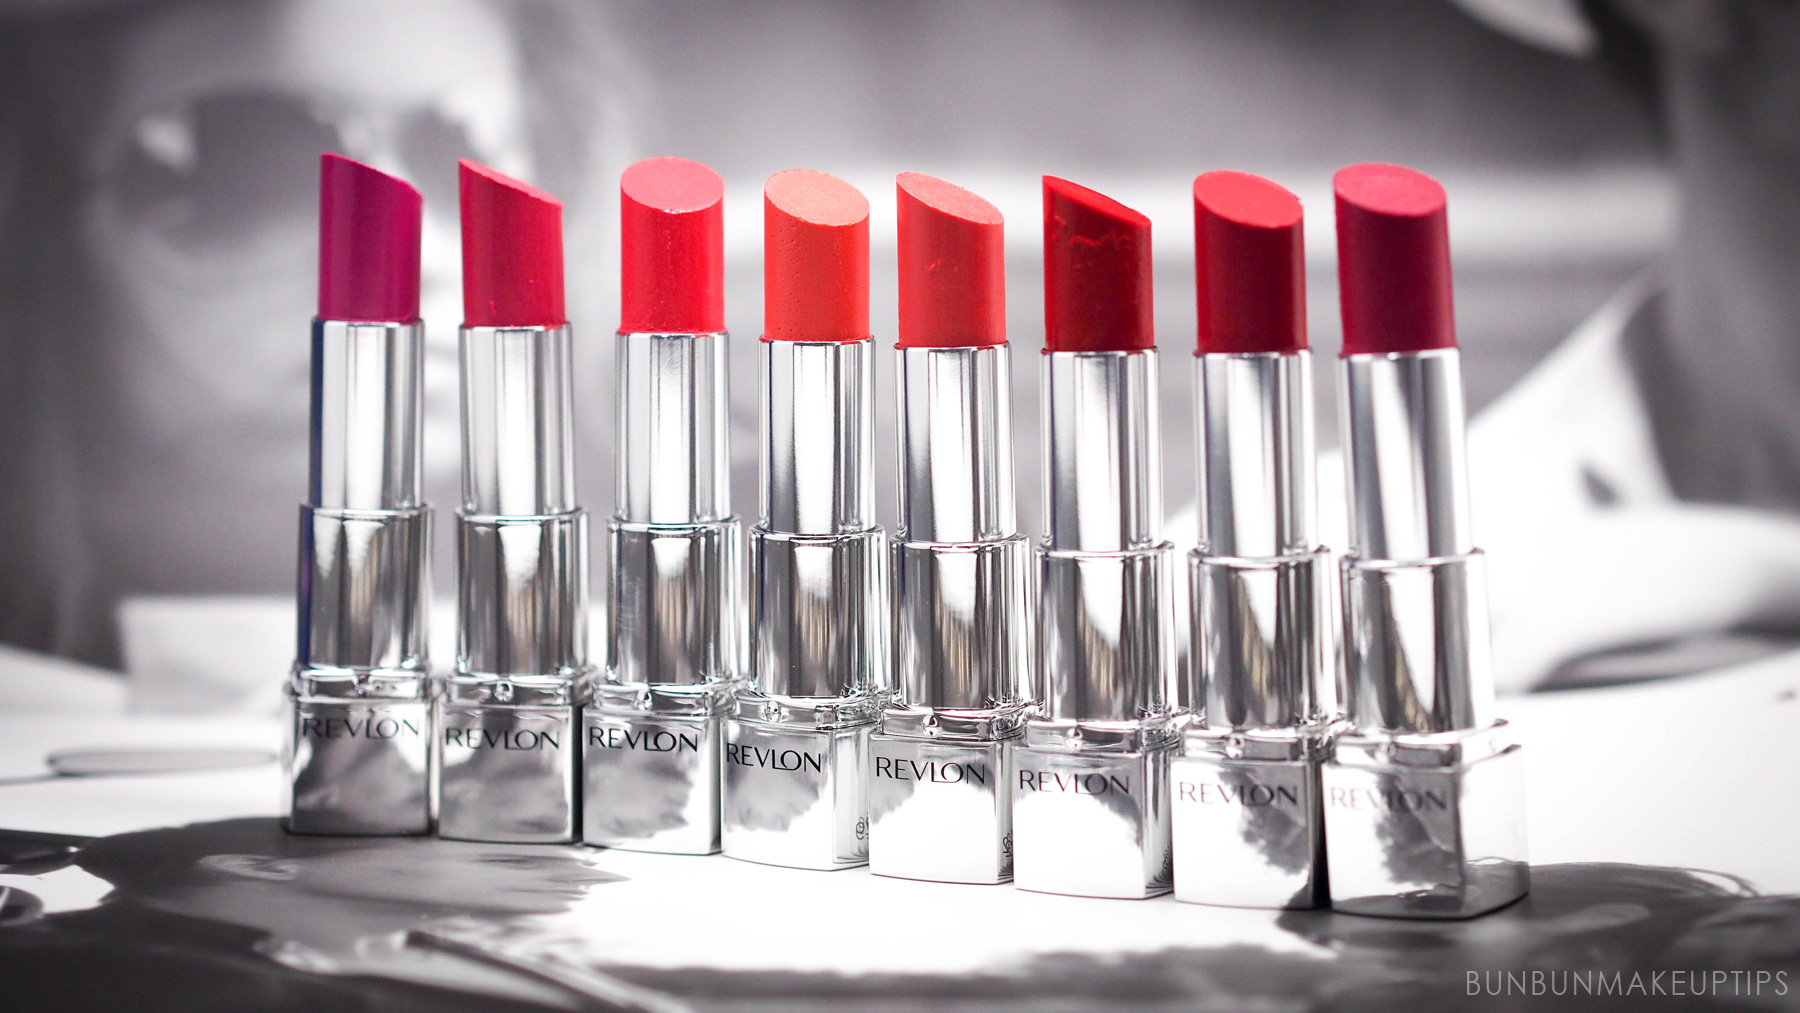 Hd Lipstick Images And Wallpaper Revlon Ultra No840 Pointsettia Channelling Diffe Looks With Lip Colors